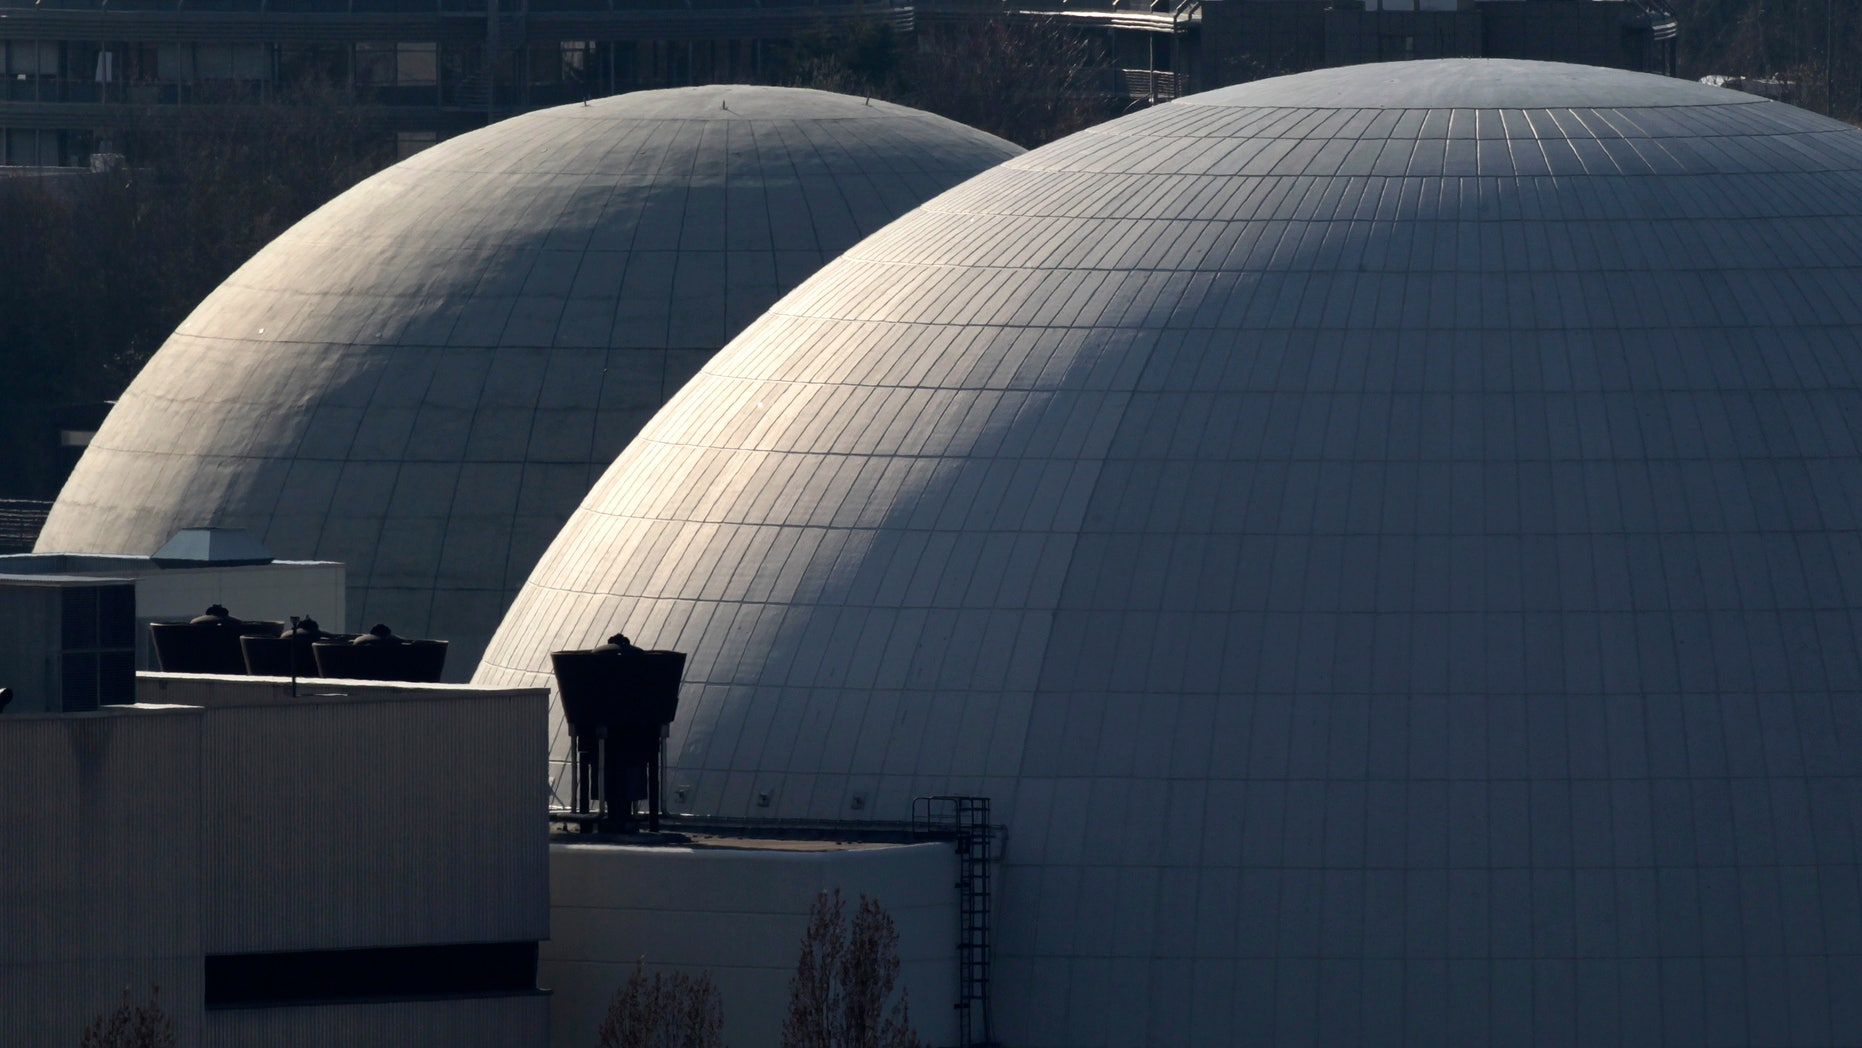 March 15: The 35-year-old nuclear plant of Neckarwestheim, Germany, is pictured. German Chancellor Angela Merkel announced seven of the country's reactors that went into operation before the end of 1980 will temporarily go offline.